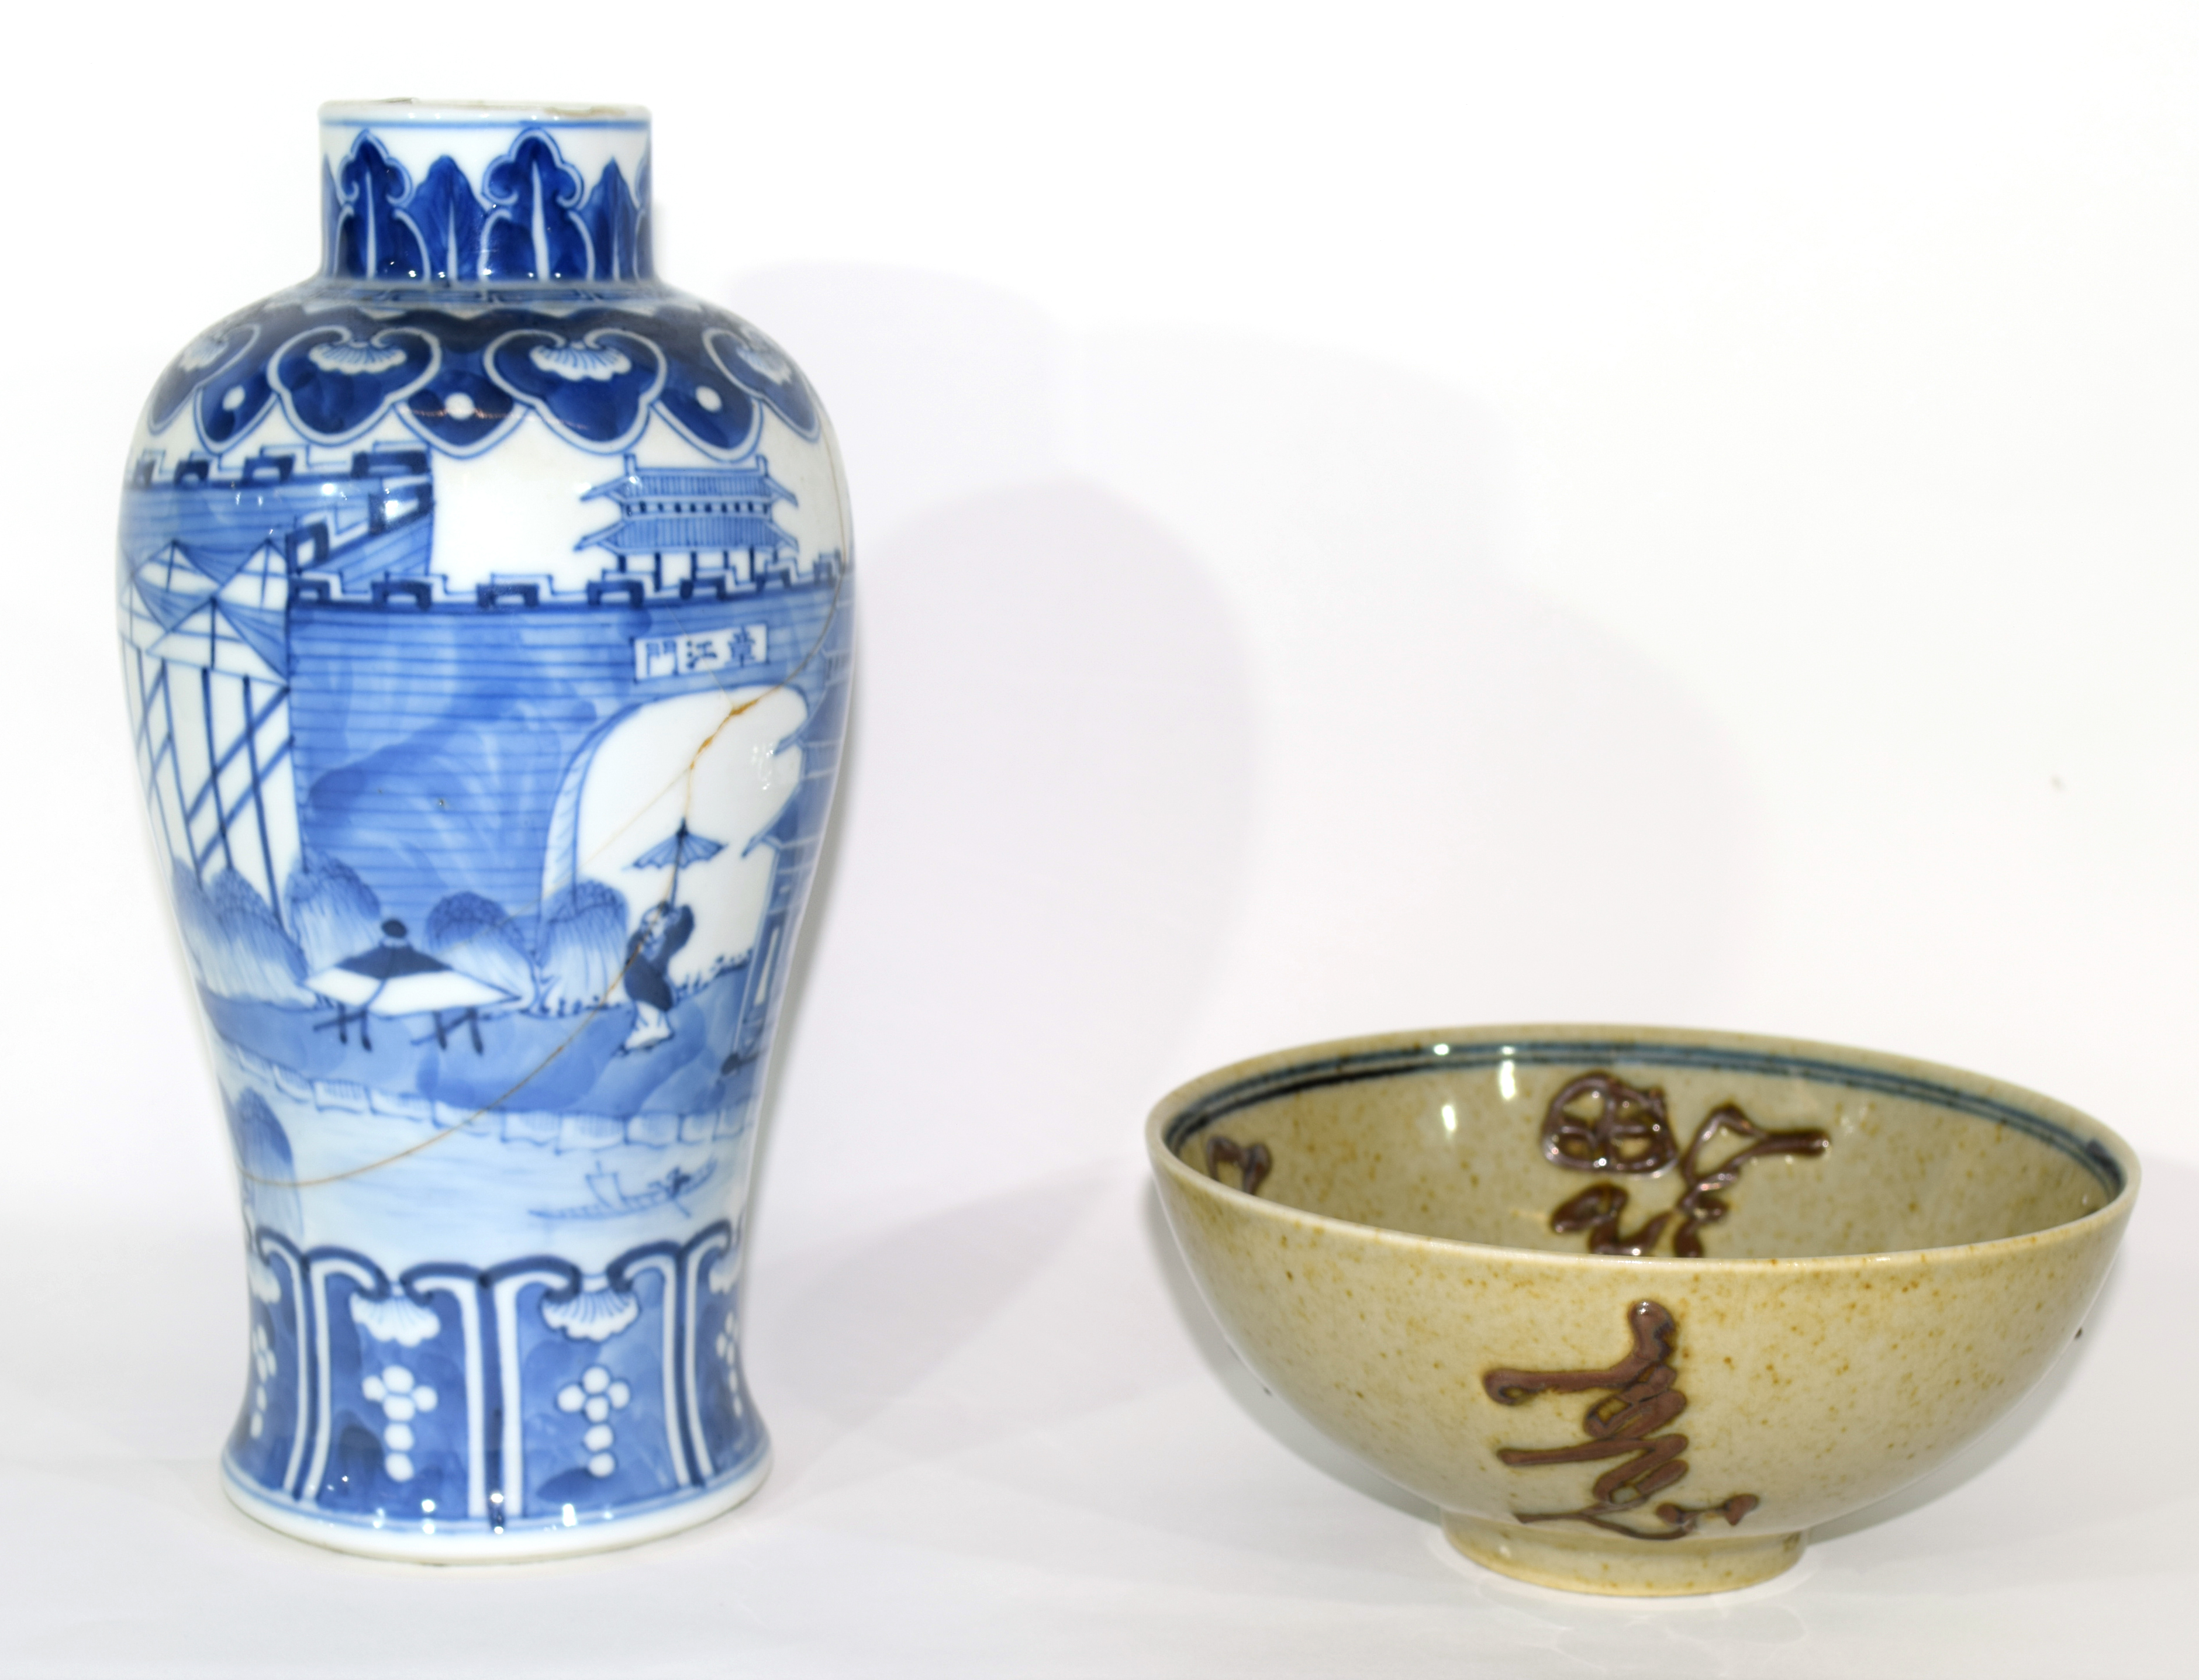 19th century Chinese porcelain bowl - Image 4 of 17